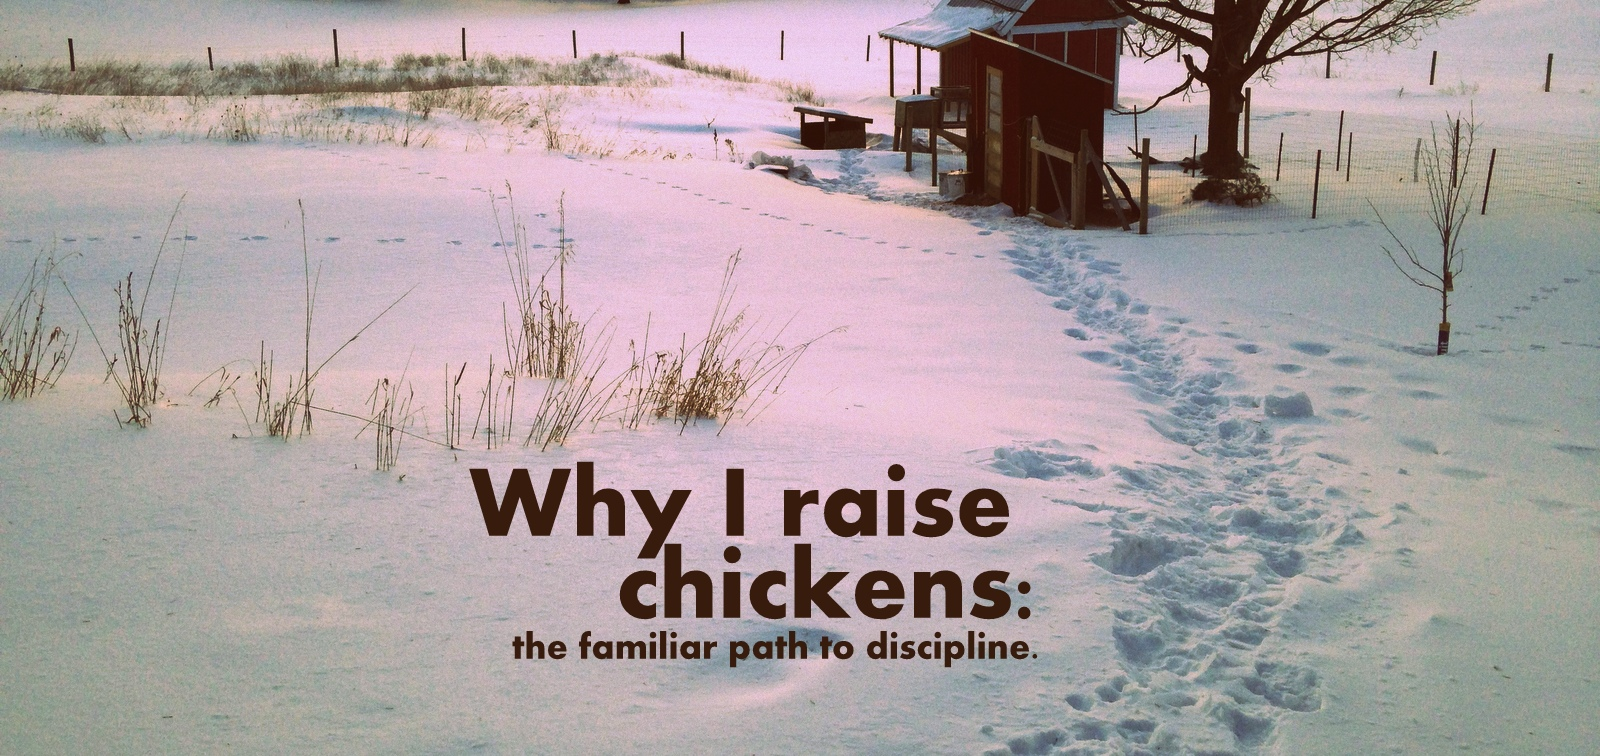 Why I Raise Chickens The Familiar Path To Discipline